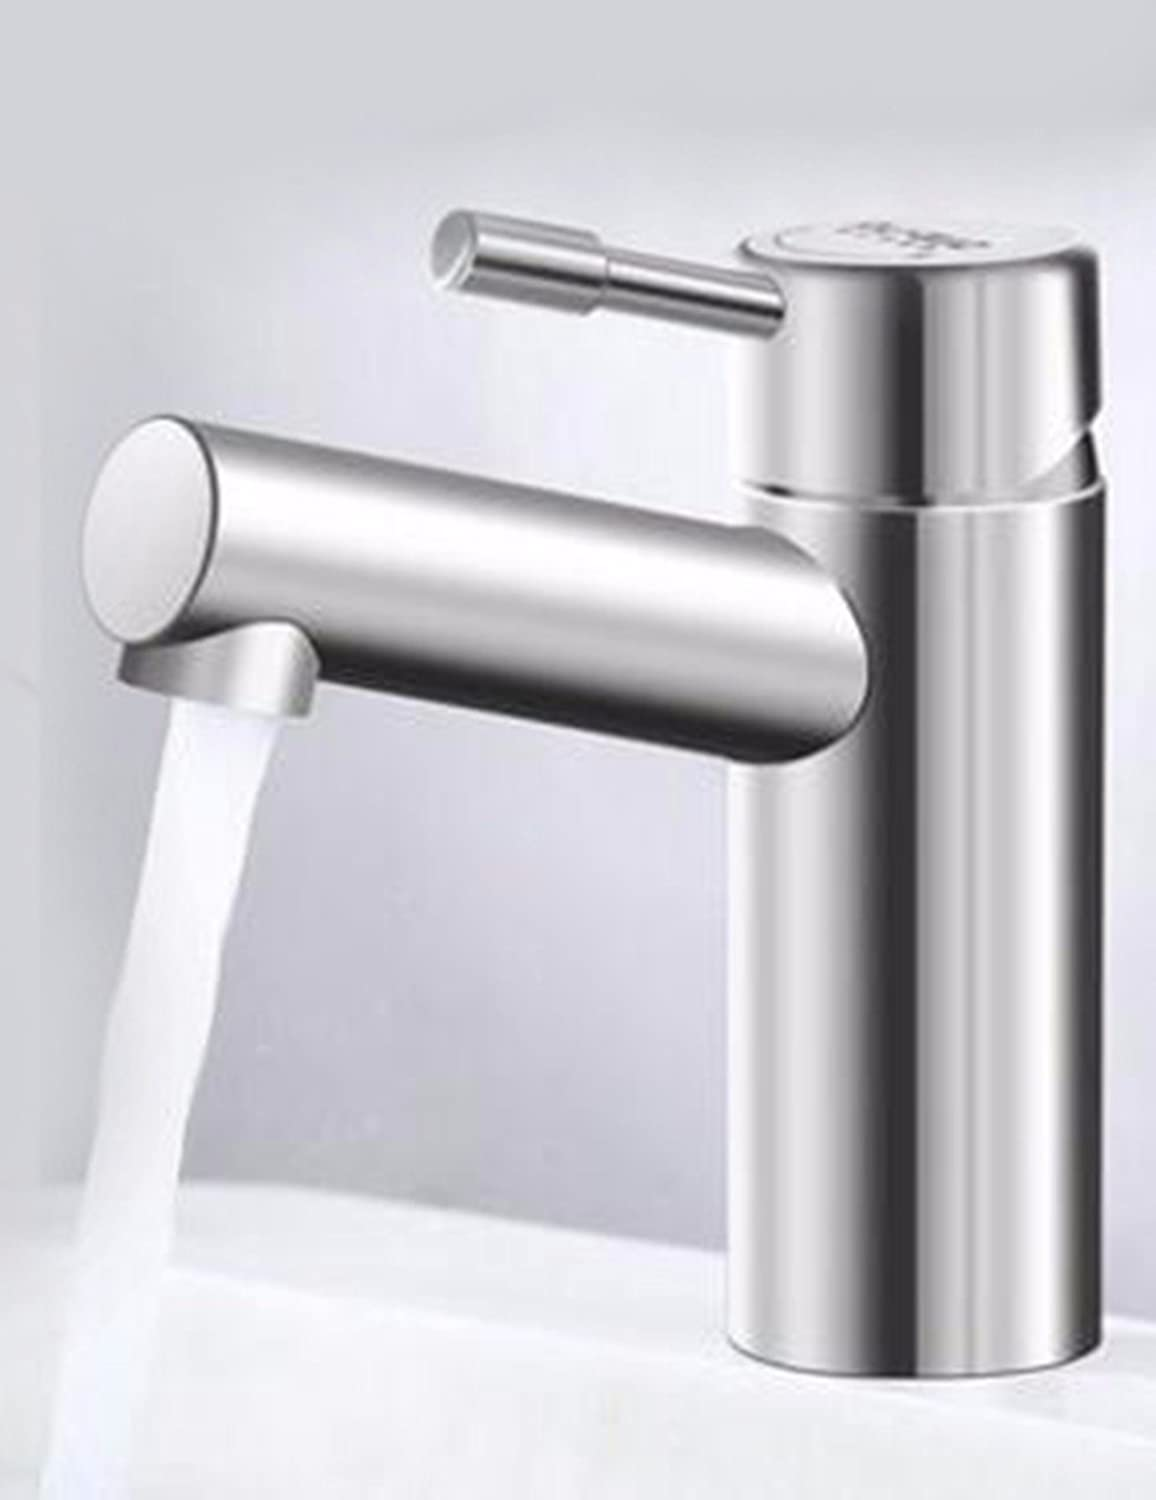 LHbox Basin Mixer Tap Bathroom Sink Faucet Lead-free 304 Stainless Steel Basin cold water tap on the tub basin, replacing taps